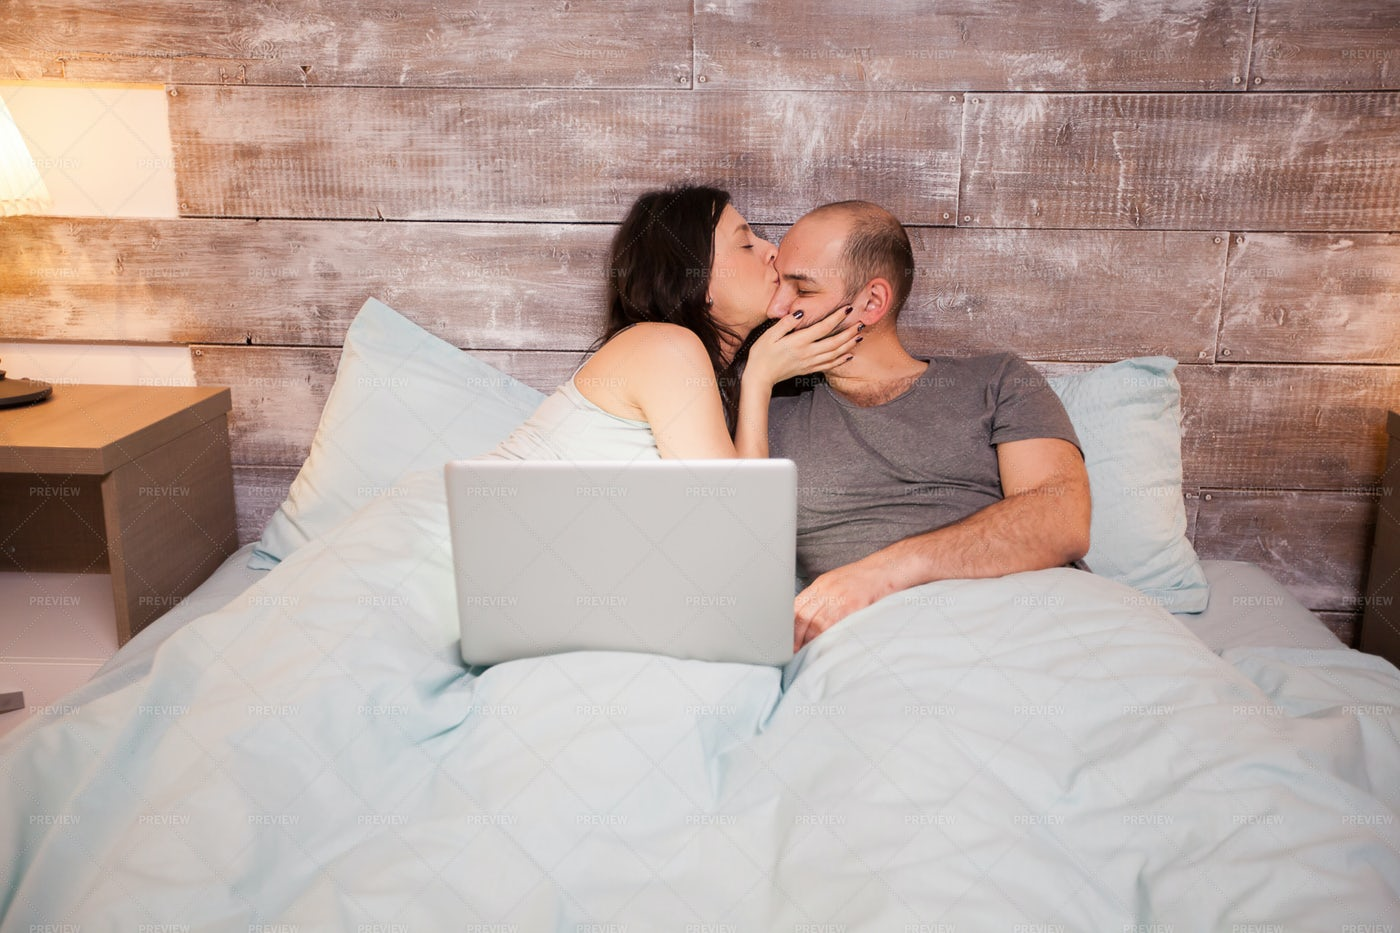 Wife Kissing Her Husband: Stock Photos